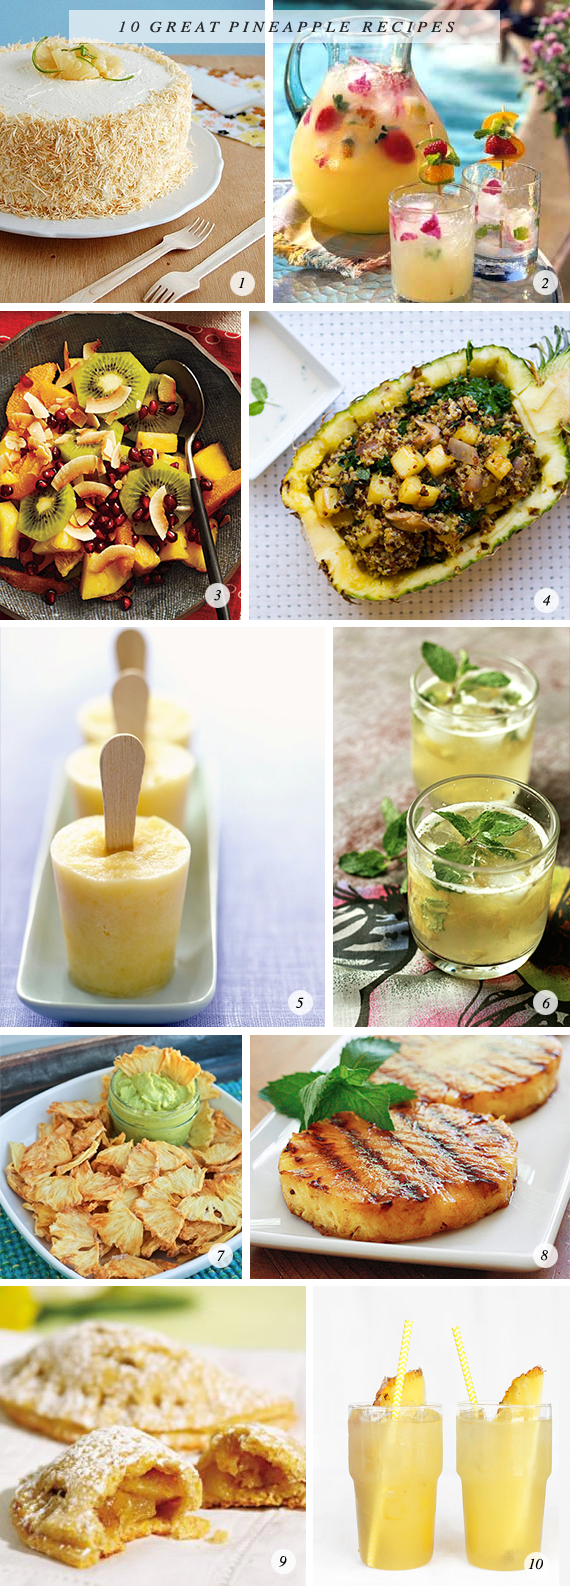 10 Great Pineapple Recipes // Bubby and Bean